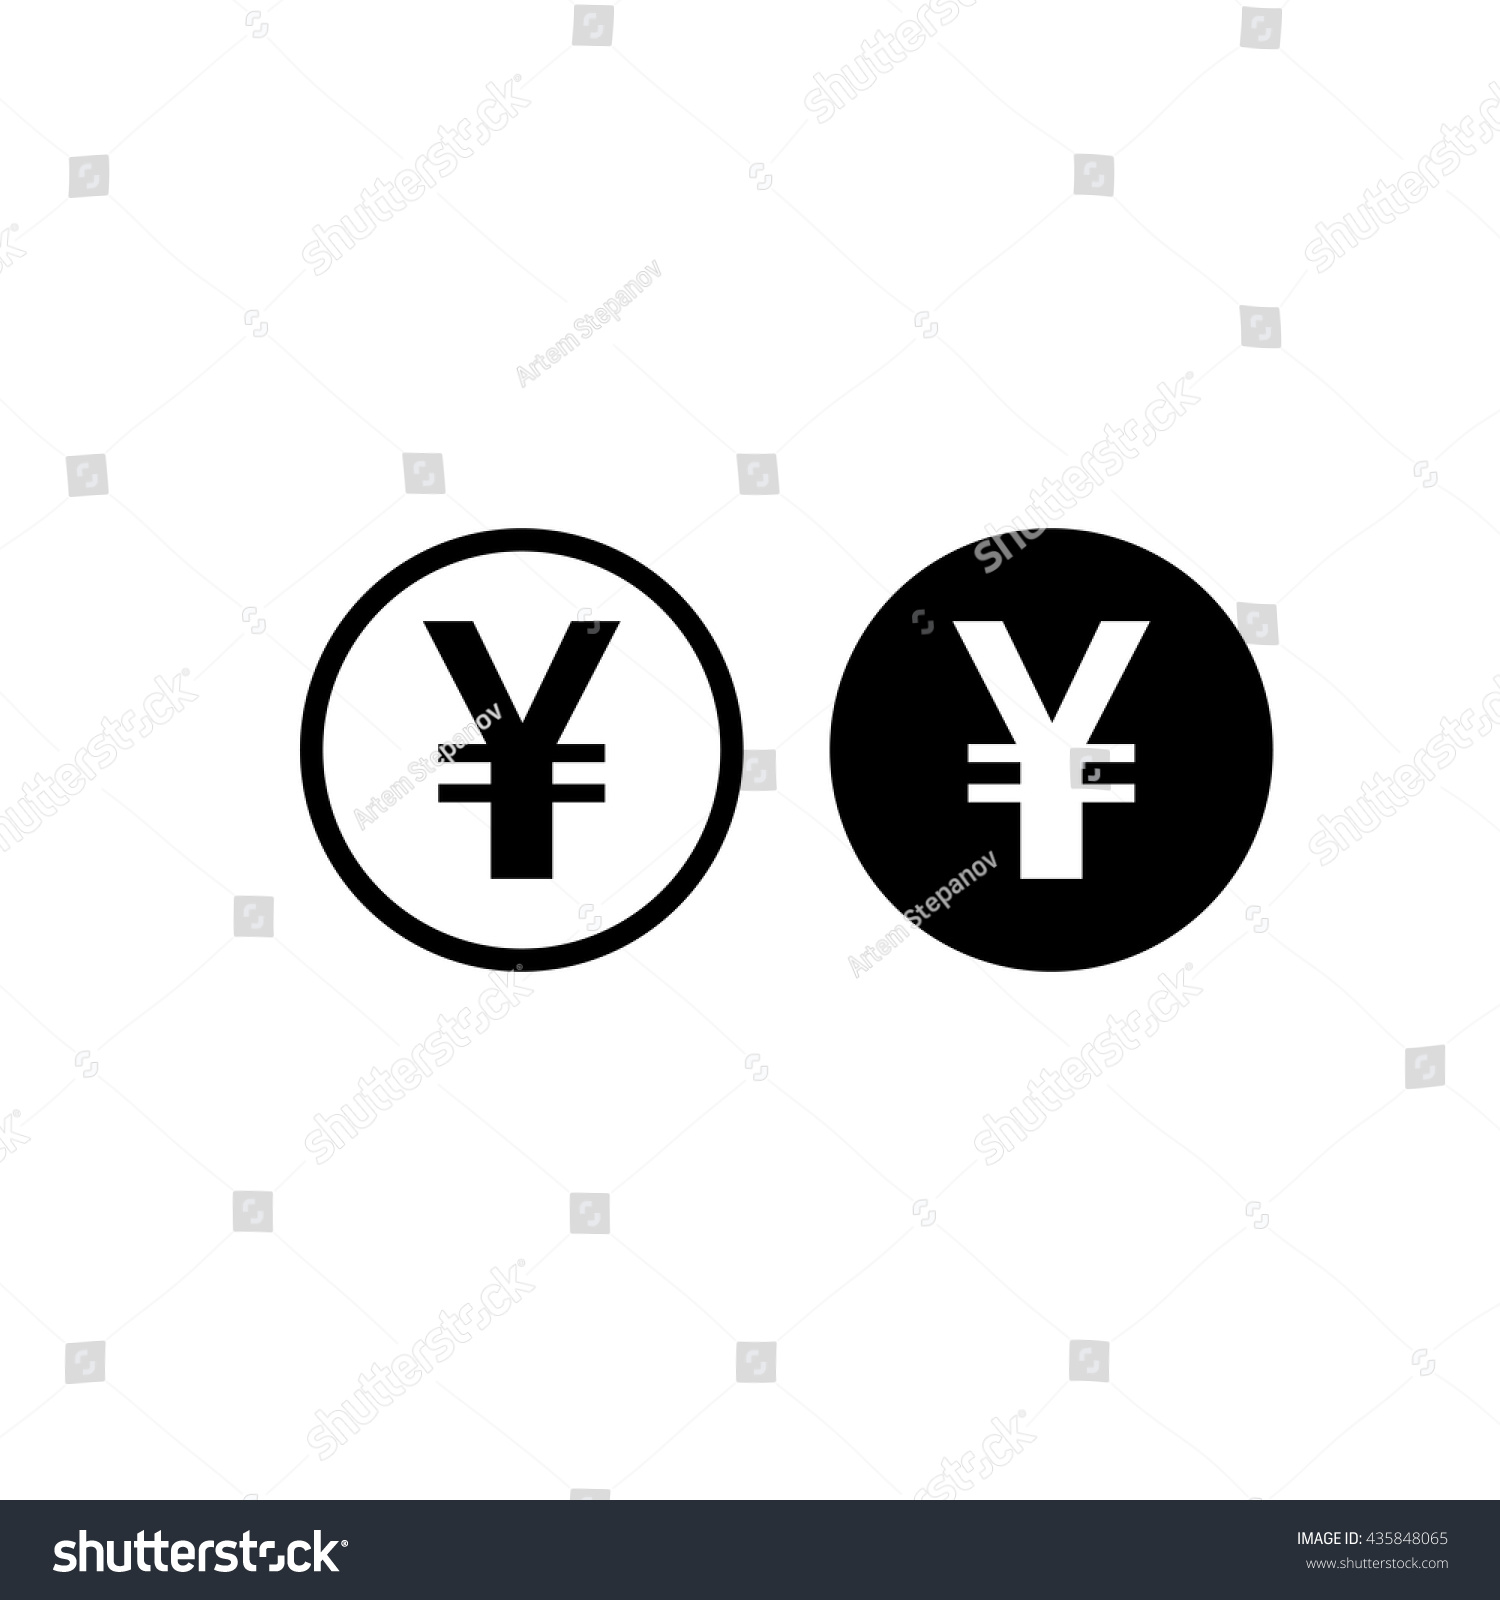 Japanese yen chinese yuan currency symbol stock vector 435848065 japanese yen or chinese yuan currency symbol flat icon for apps and websites biocorpaavc Image collections